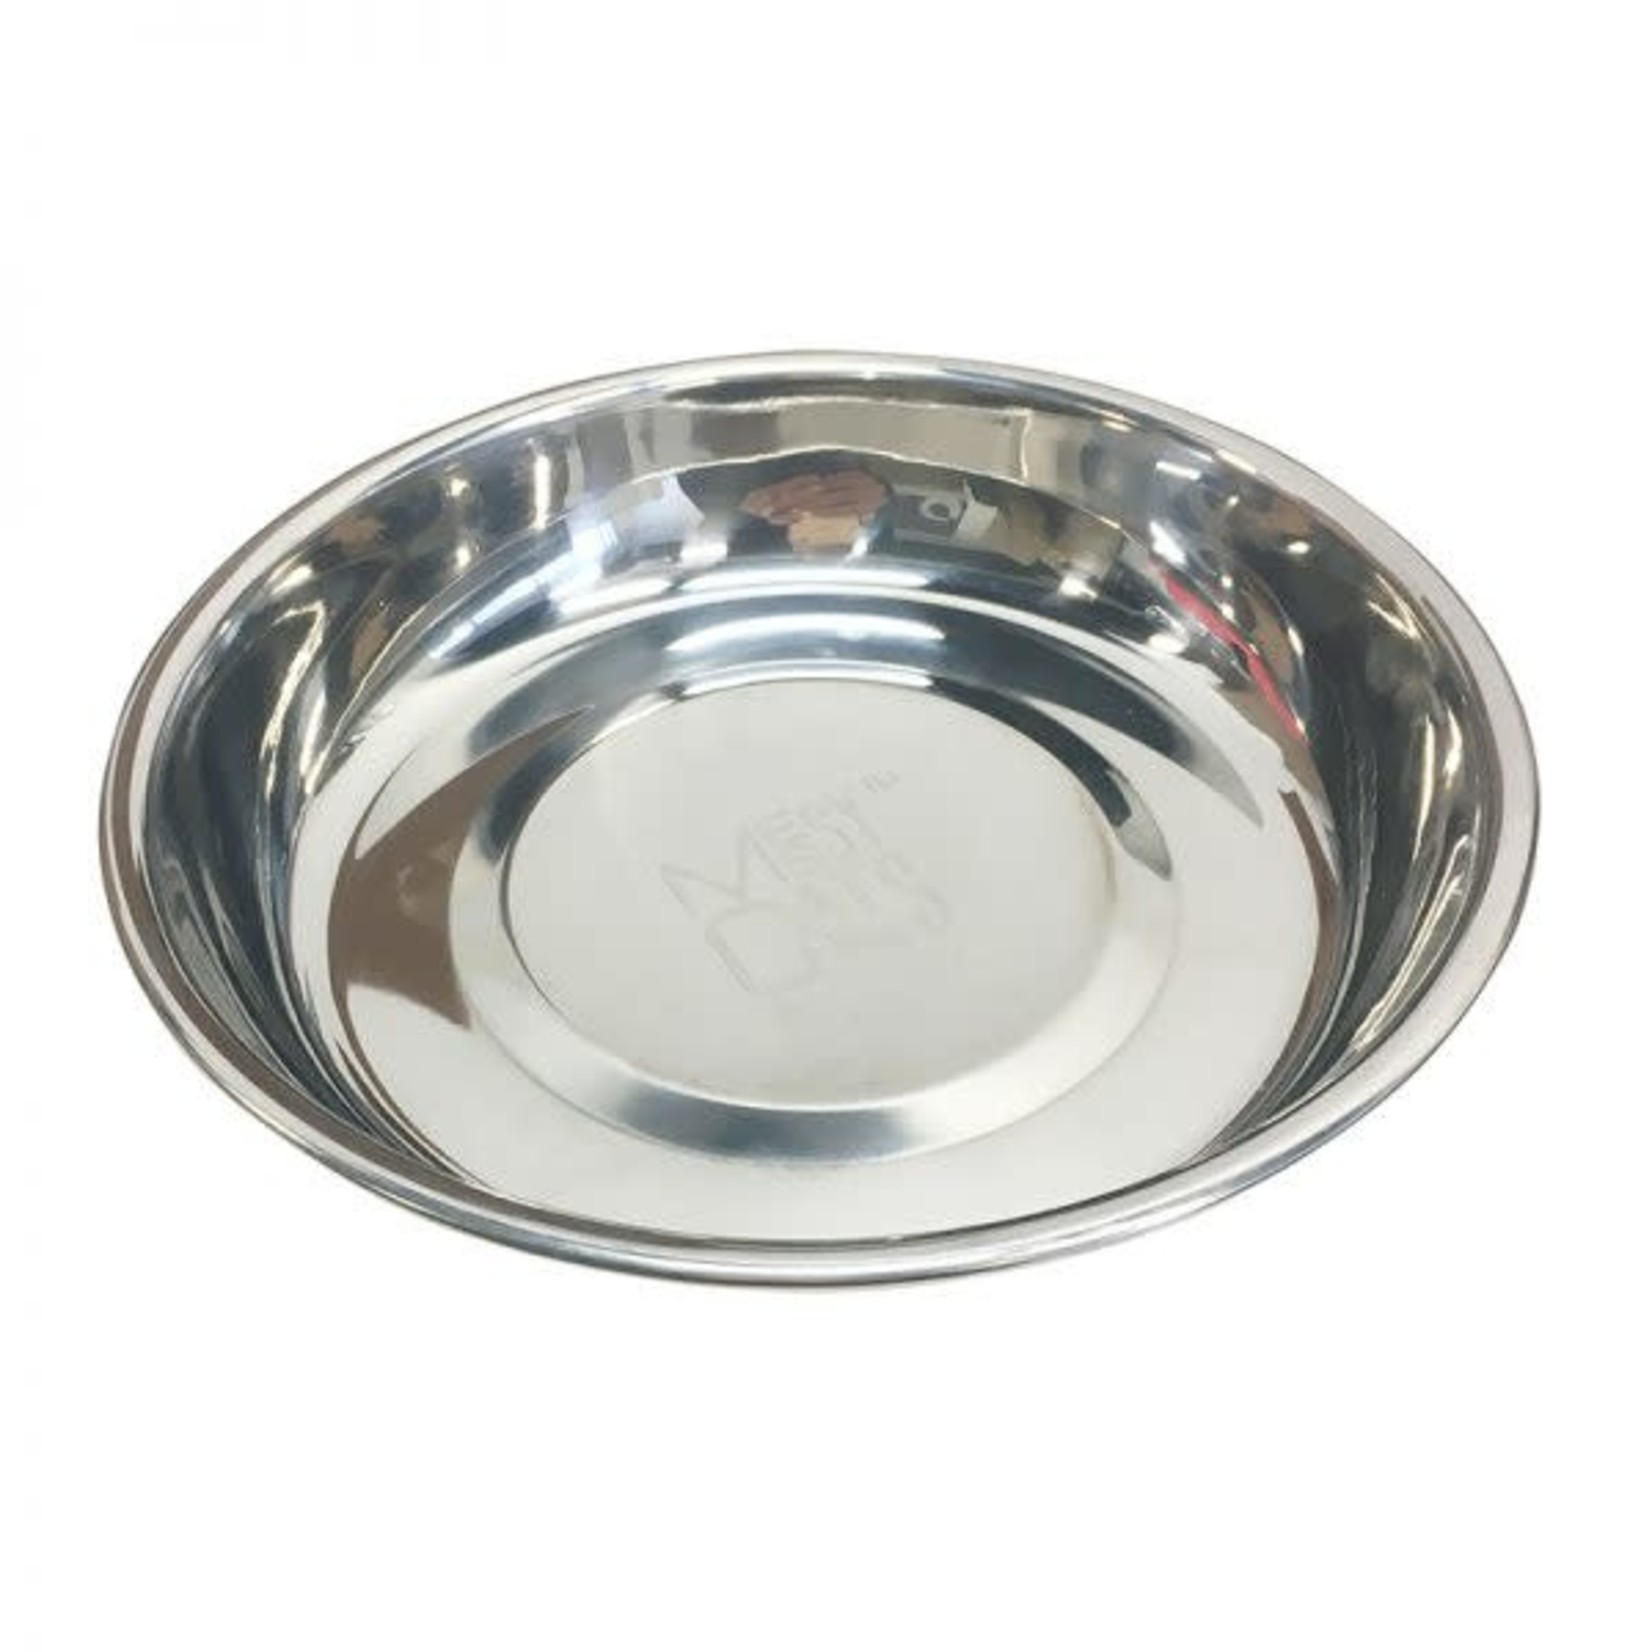 Messy Mutts Messy Mutts Cat Bowl 1.75 CUP